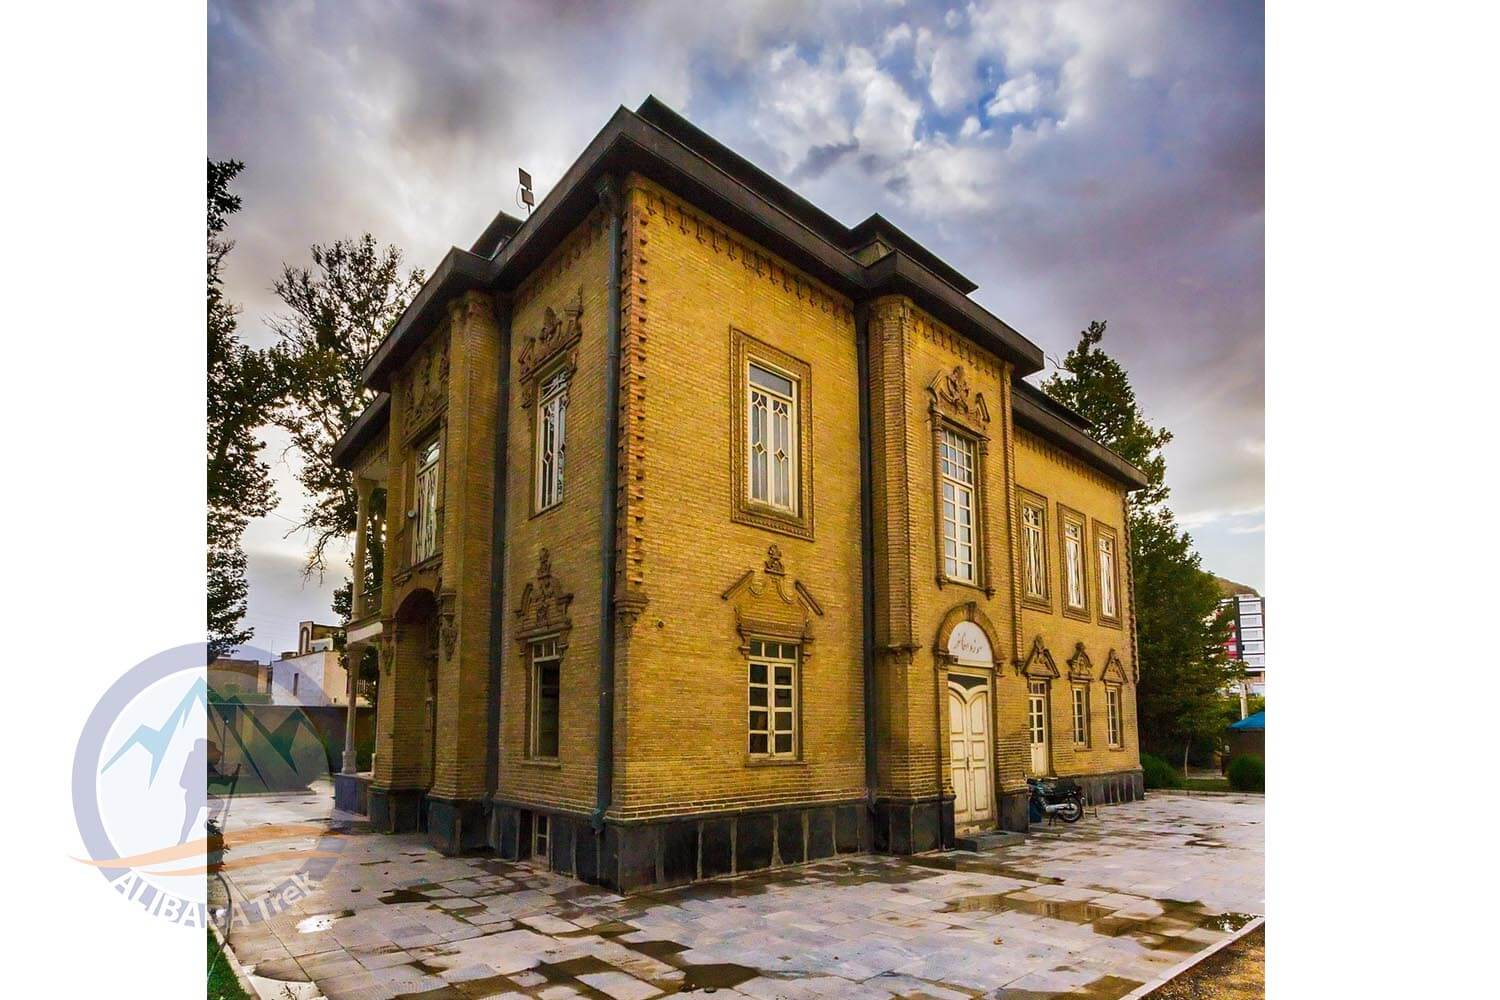 Alibabatrek Iran Travel visit iran tour packages Travel to Arak sightseeing Trip to Arak city tour tourism Arak tourist attraction arak travel arak tour visit arak khakbaz house